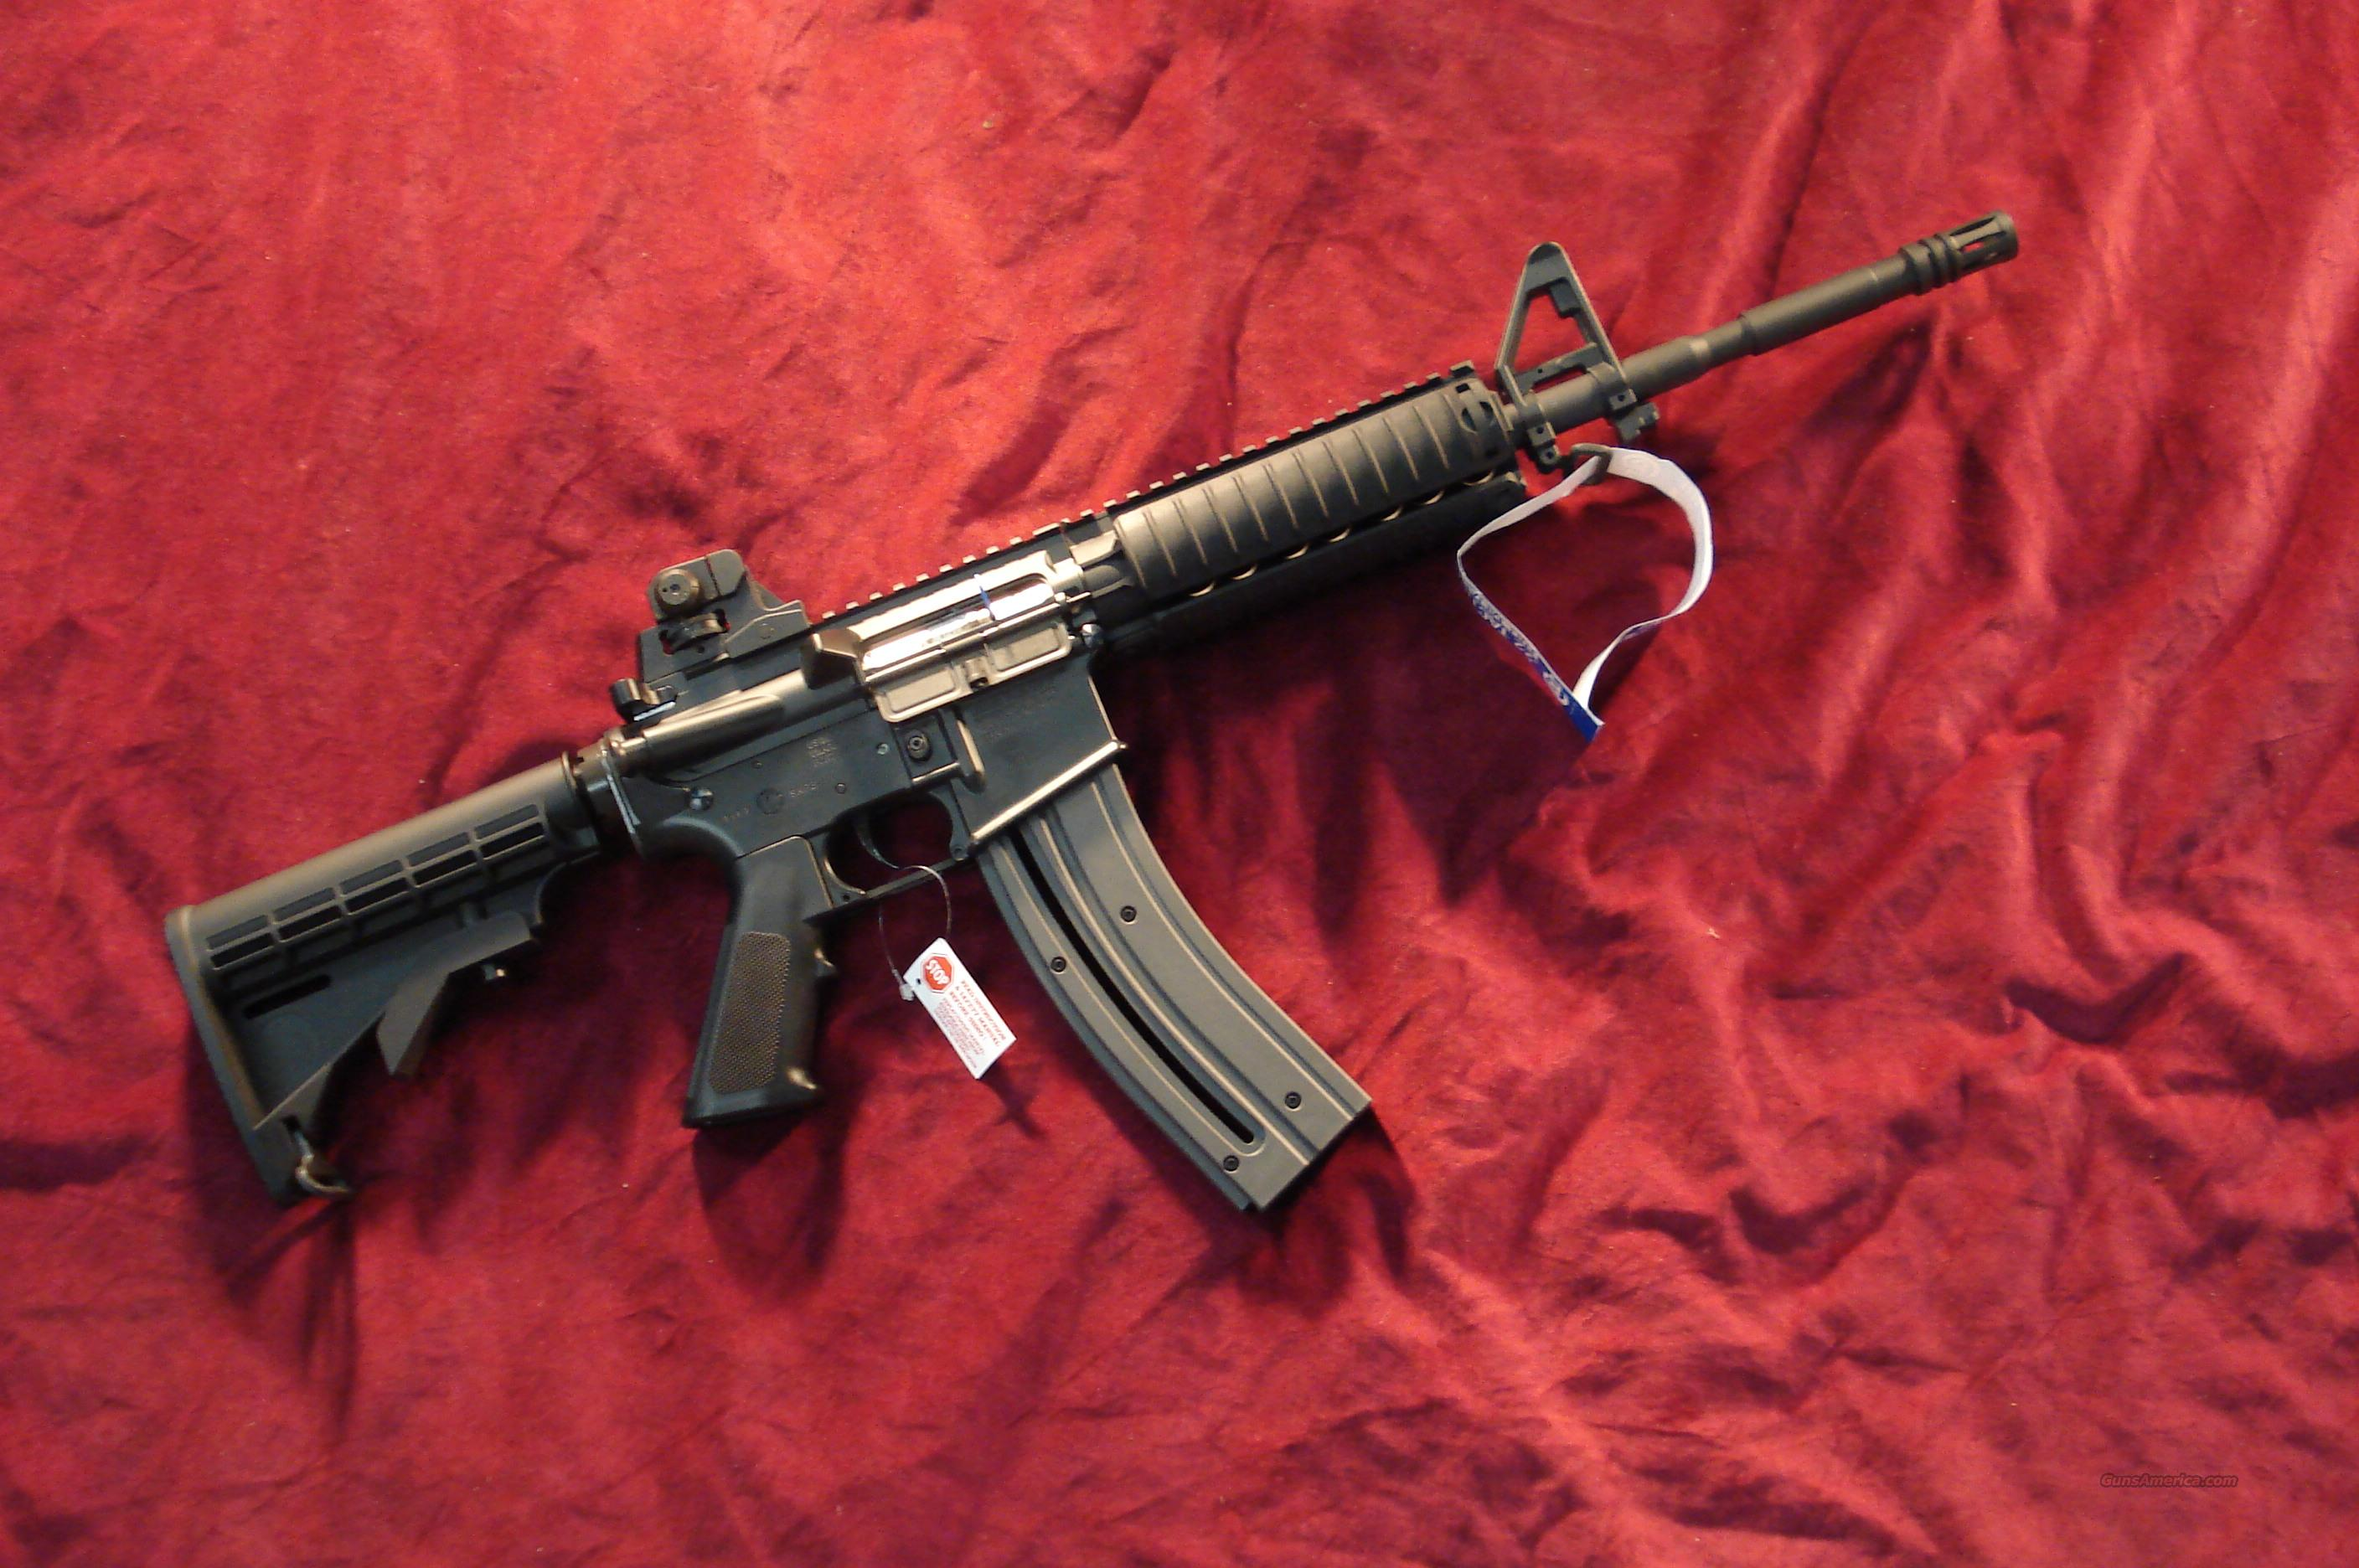 COLT M4 OPS 22LR CAL CARBINE  NEW  (5760302)   Guns > Rifles > Colt Military/Tactical Rifles